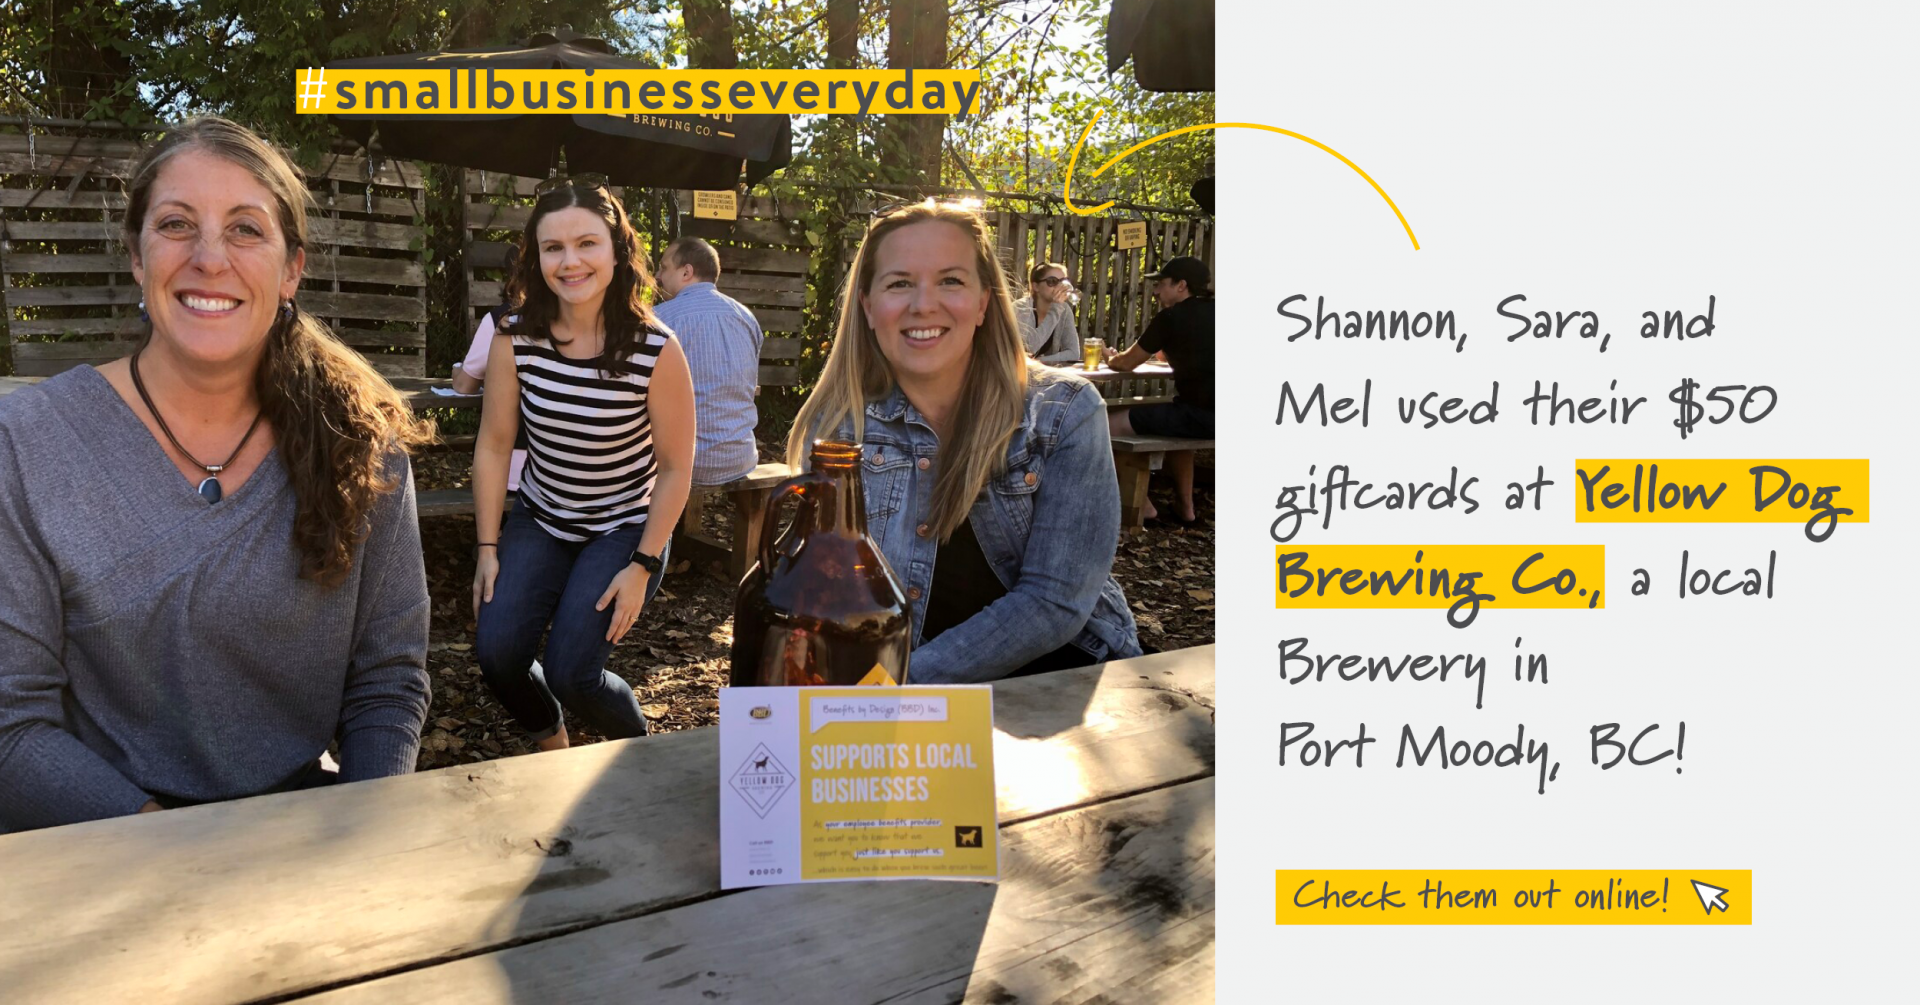 3 BBD employees at an outside patio smiling | Support Small Business | Benefits by Design